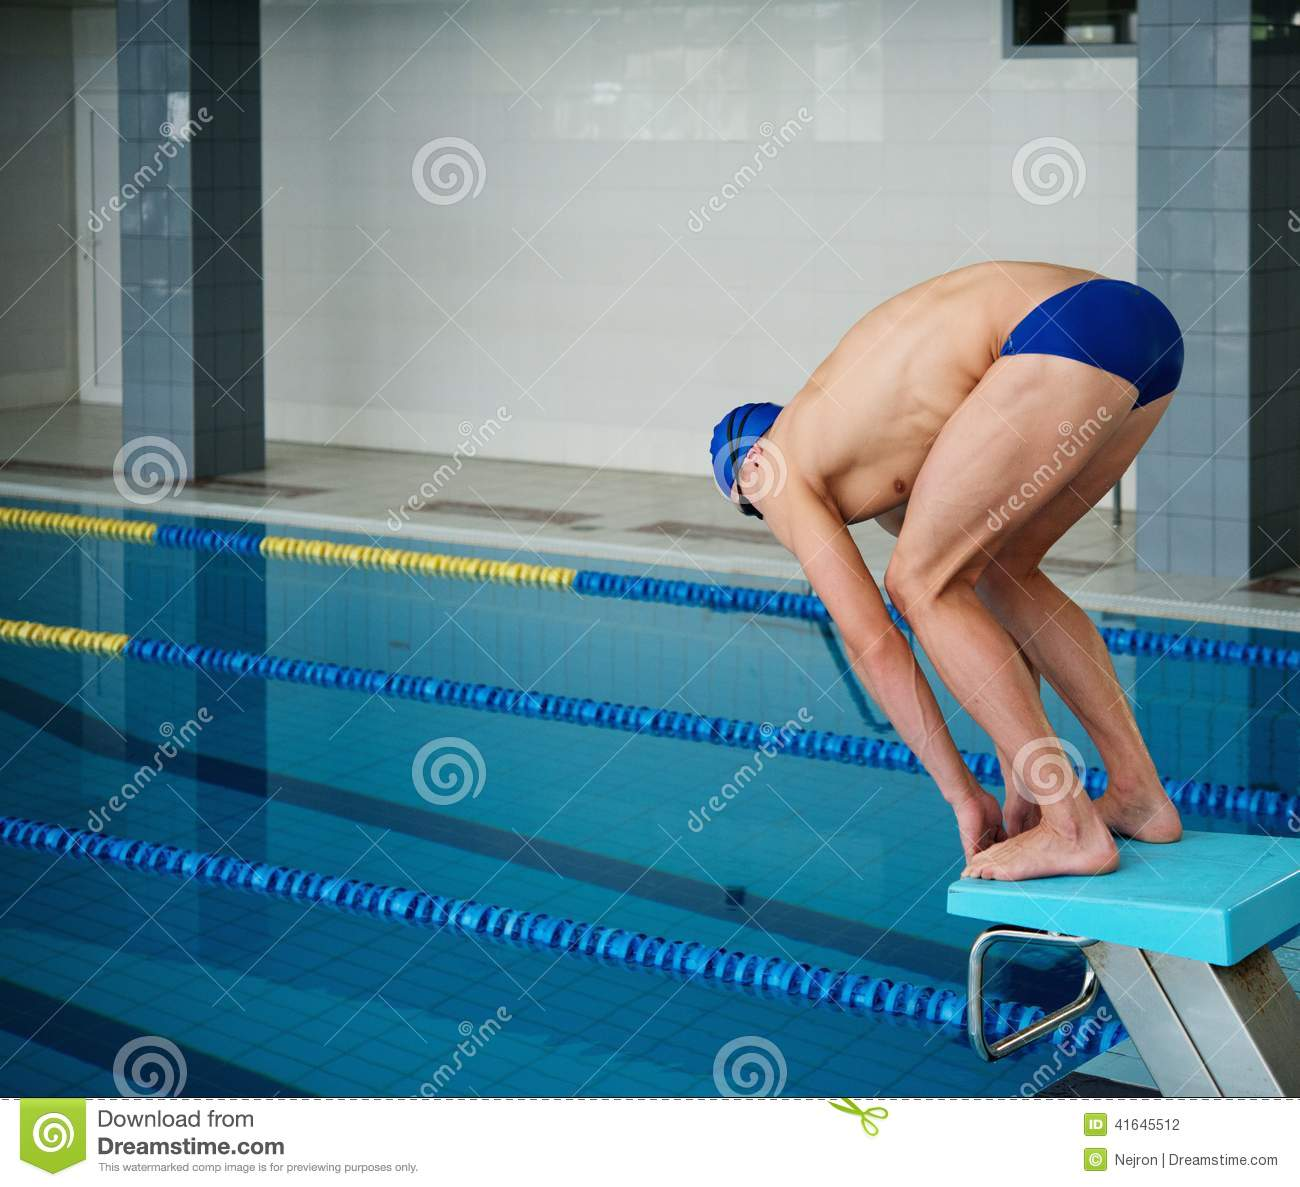 swimmer jumping from starting block stock photo image of sport competition 41645512. Black Bedroom Furniture Sets. Home Design Ideas